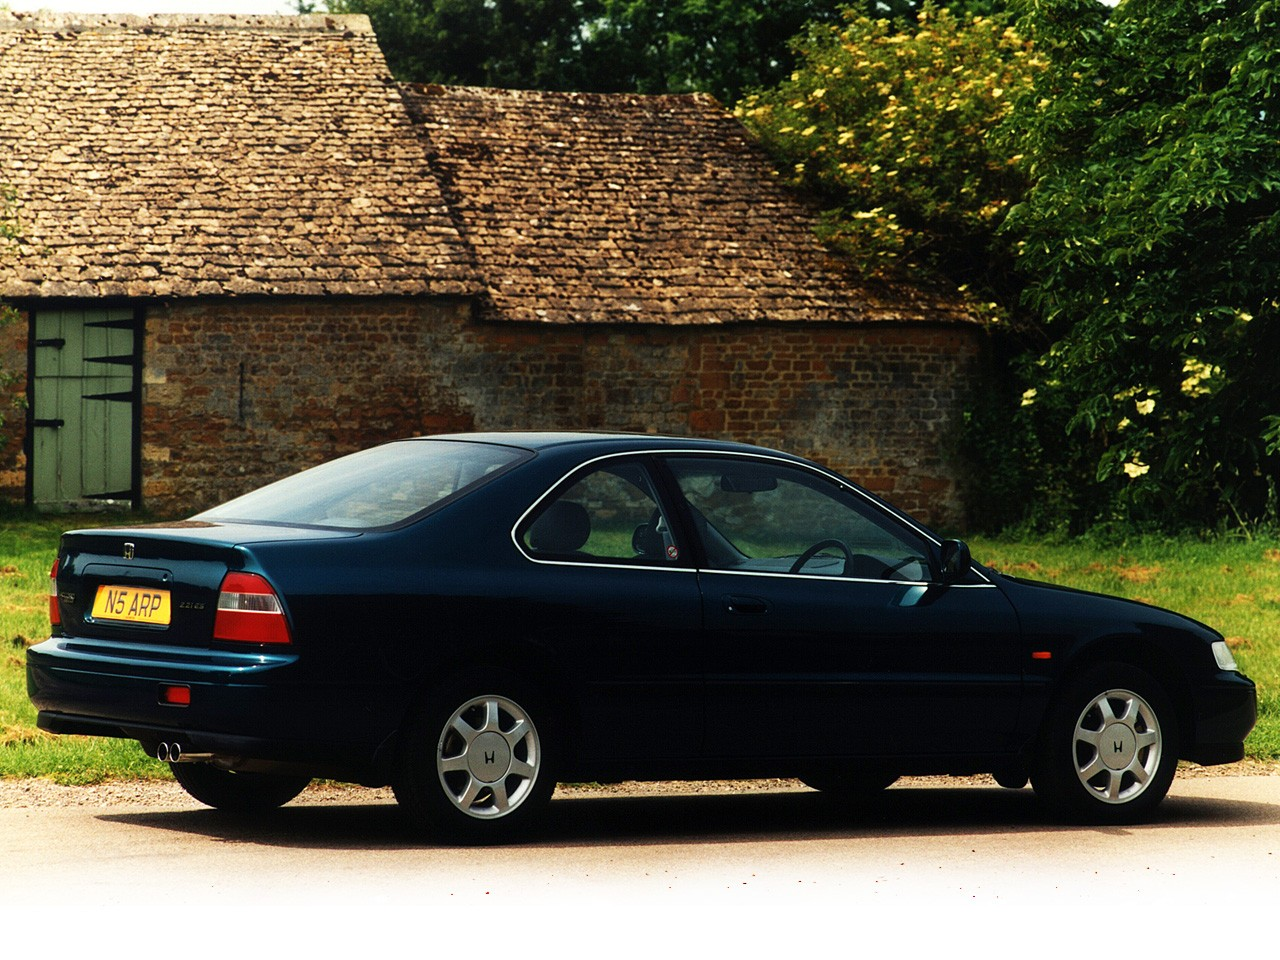 HONDA Accord Coupe specs & photos - 1994, 1995, 1996, 1997, 1998 - autoevolution